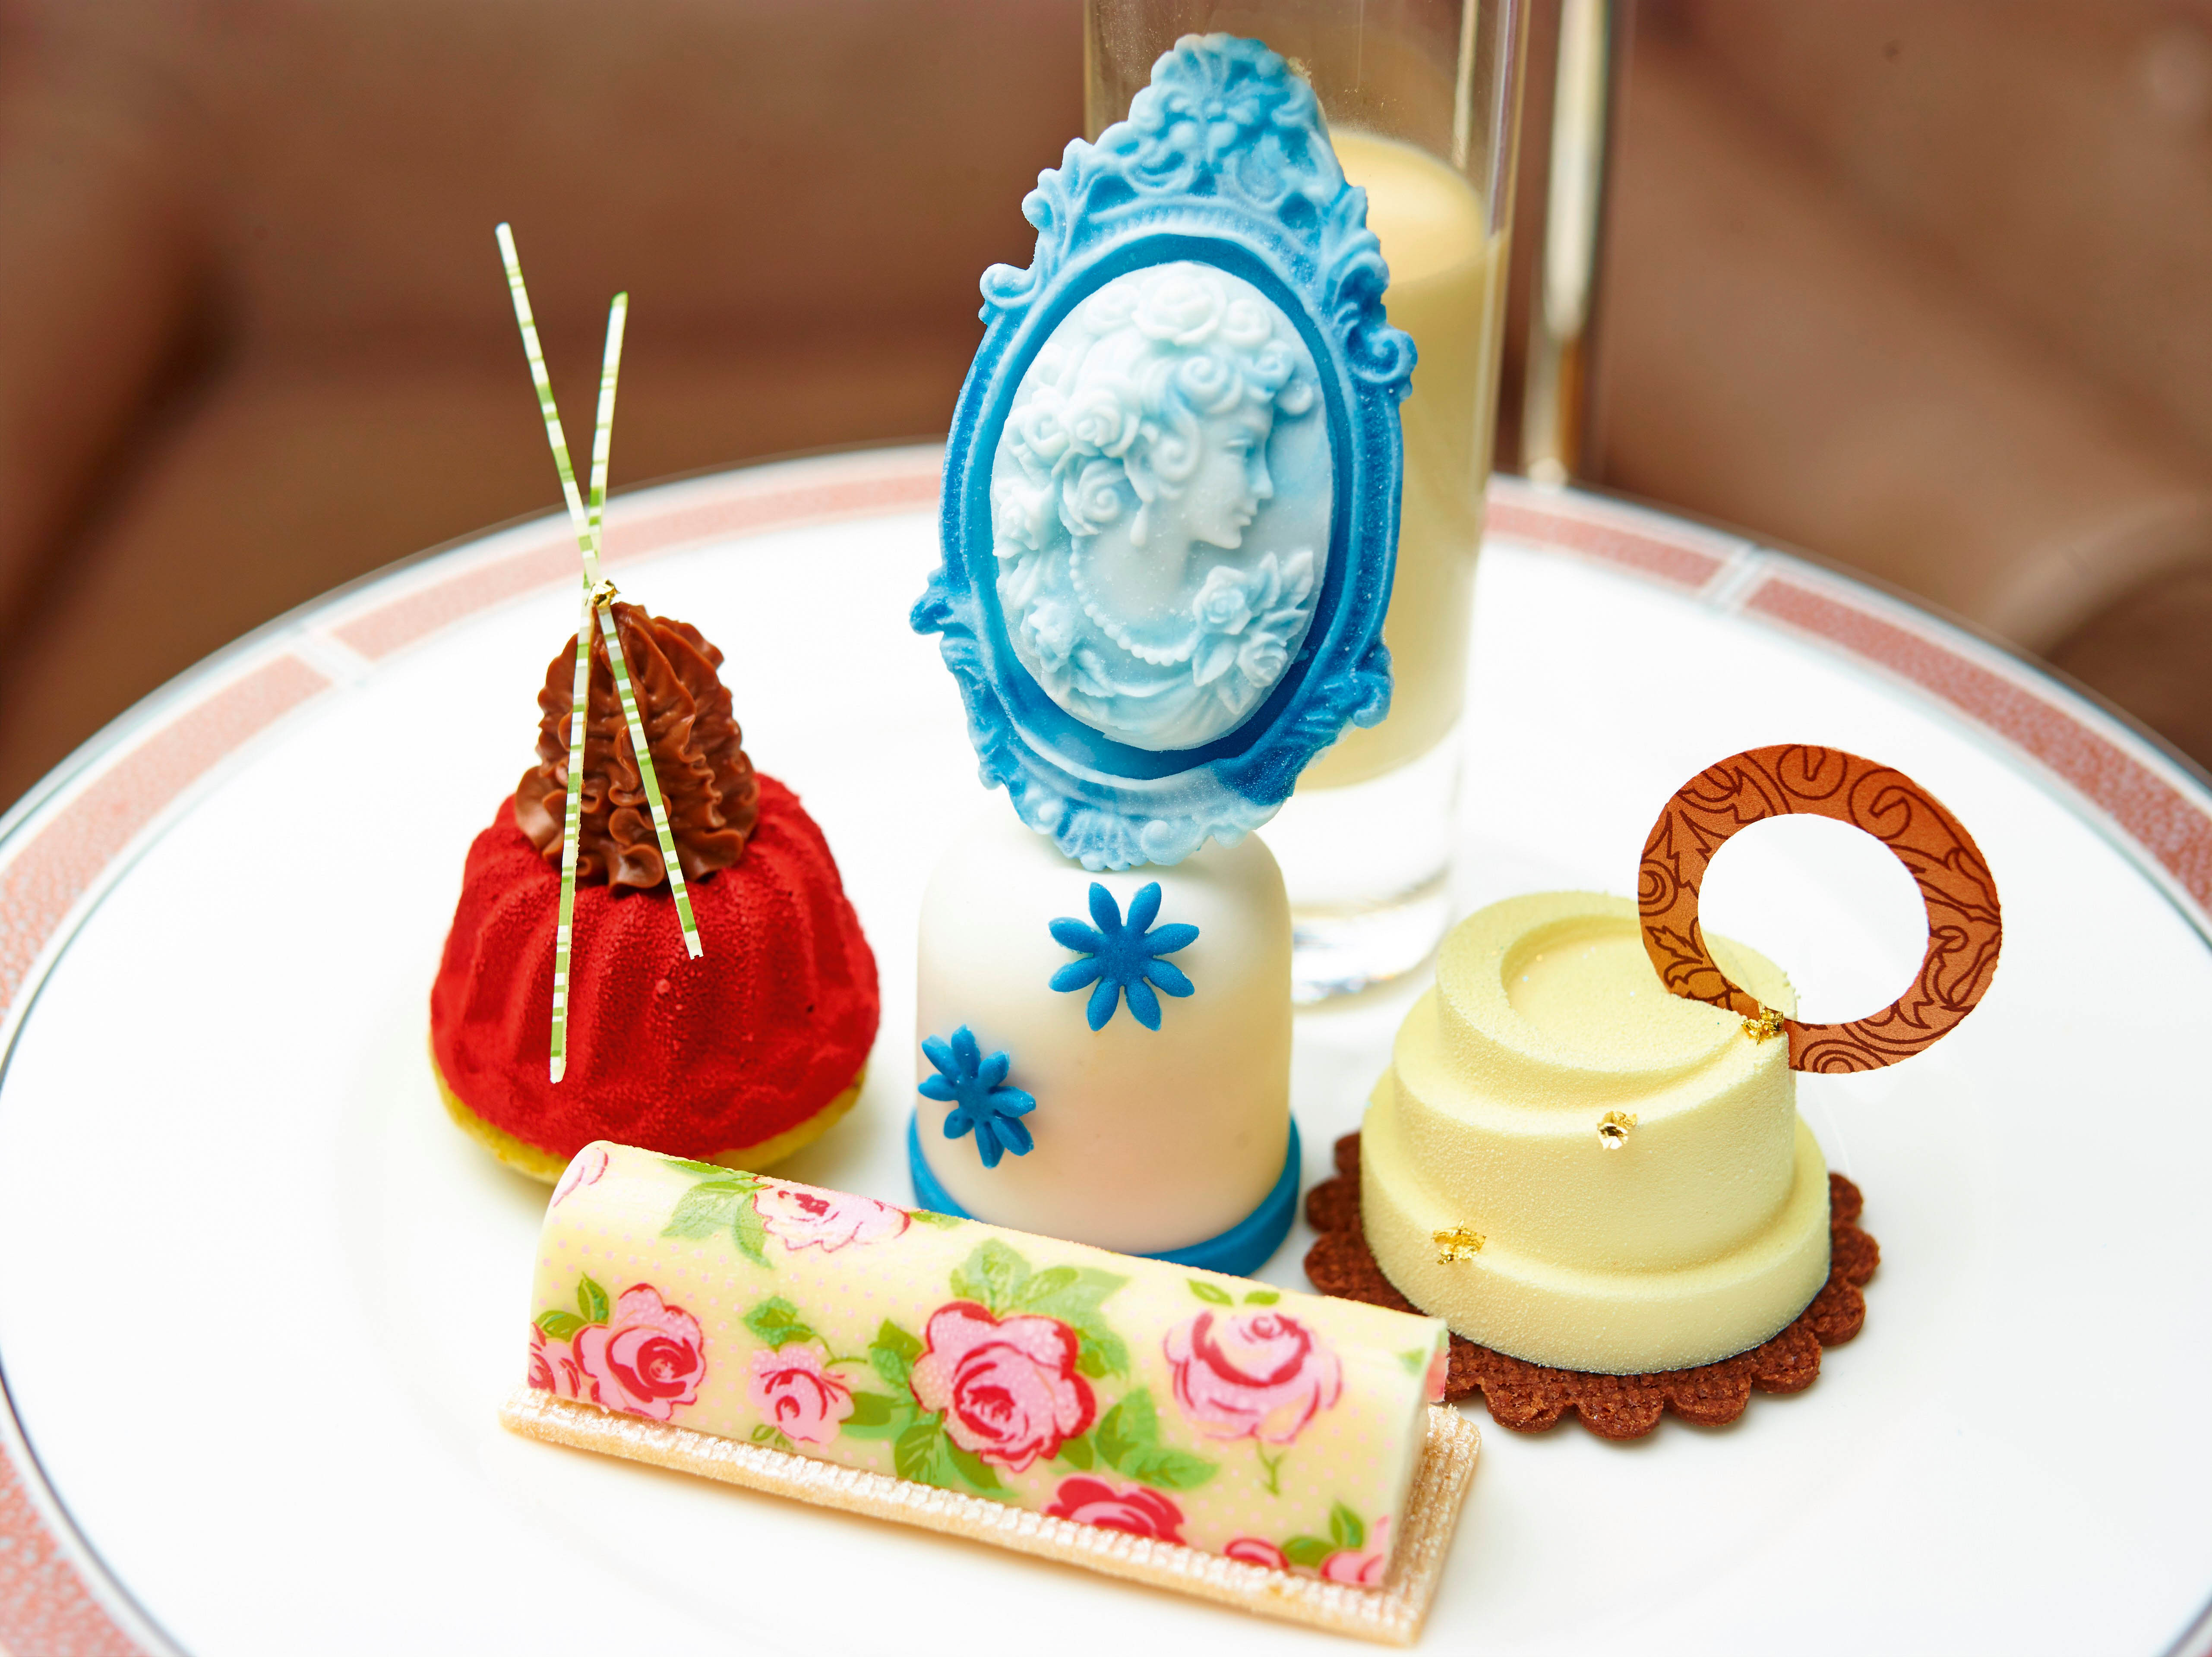 Cherish Finden miniature cakes and pastries